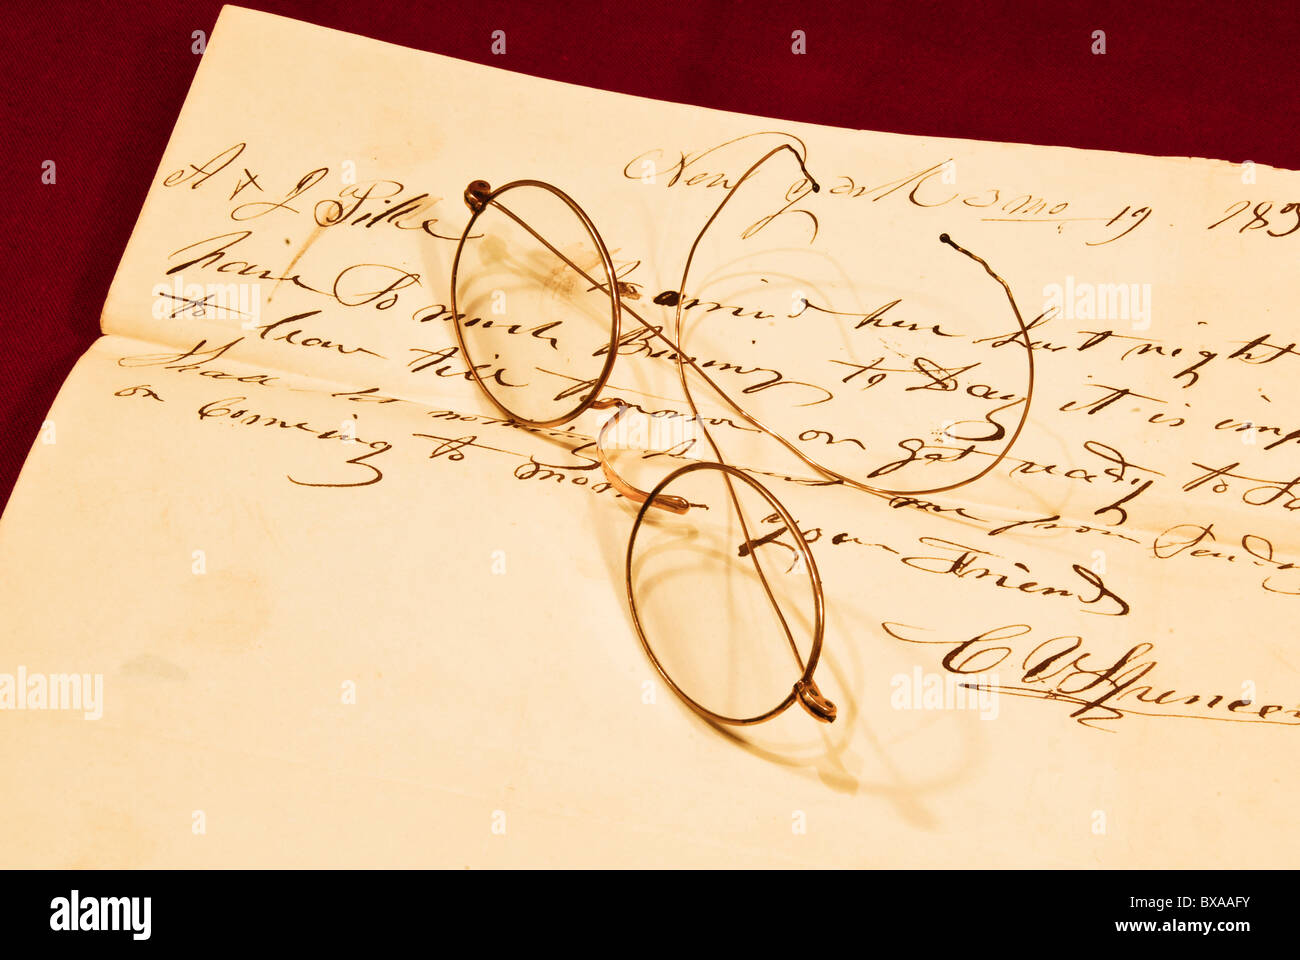 Wire-framed gold spectacles lying on a 19th century hand-written letter. - Stock Image